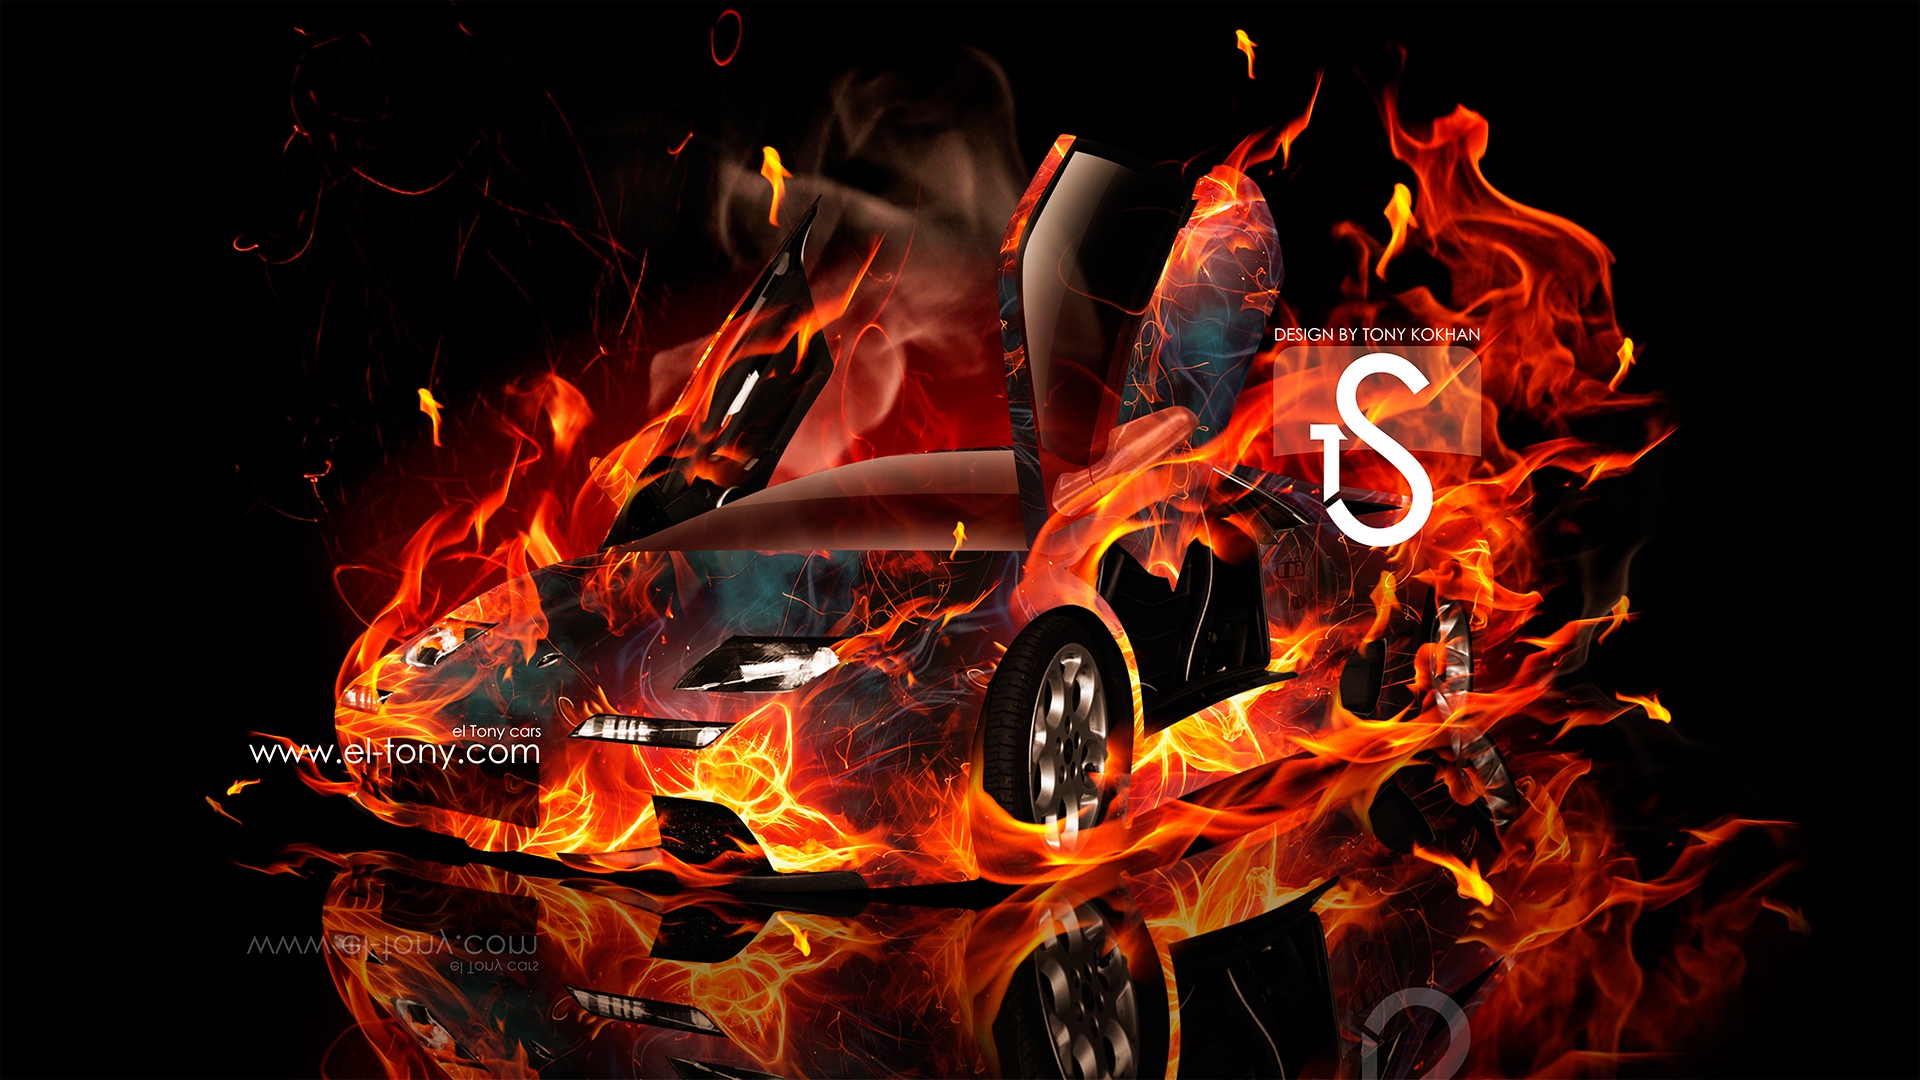 Lamborghini Diablo Fire Car Speed Abstract 2013 HD Wallpapers 1920x1080